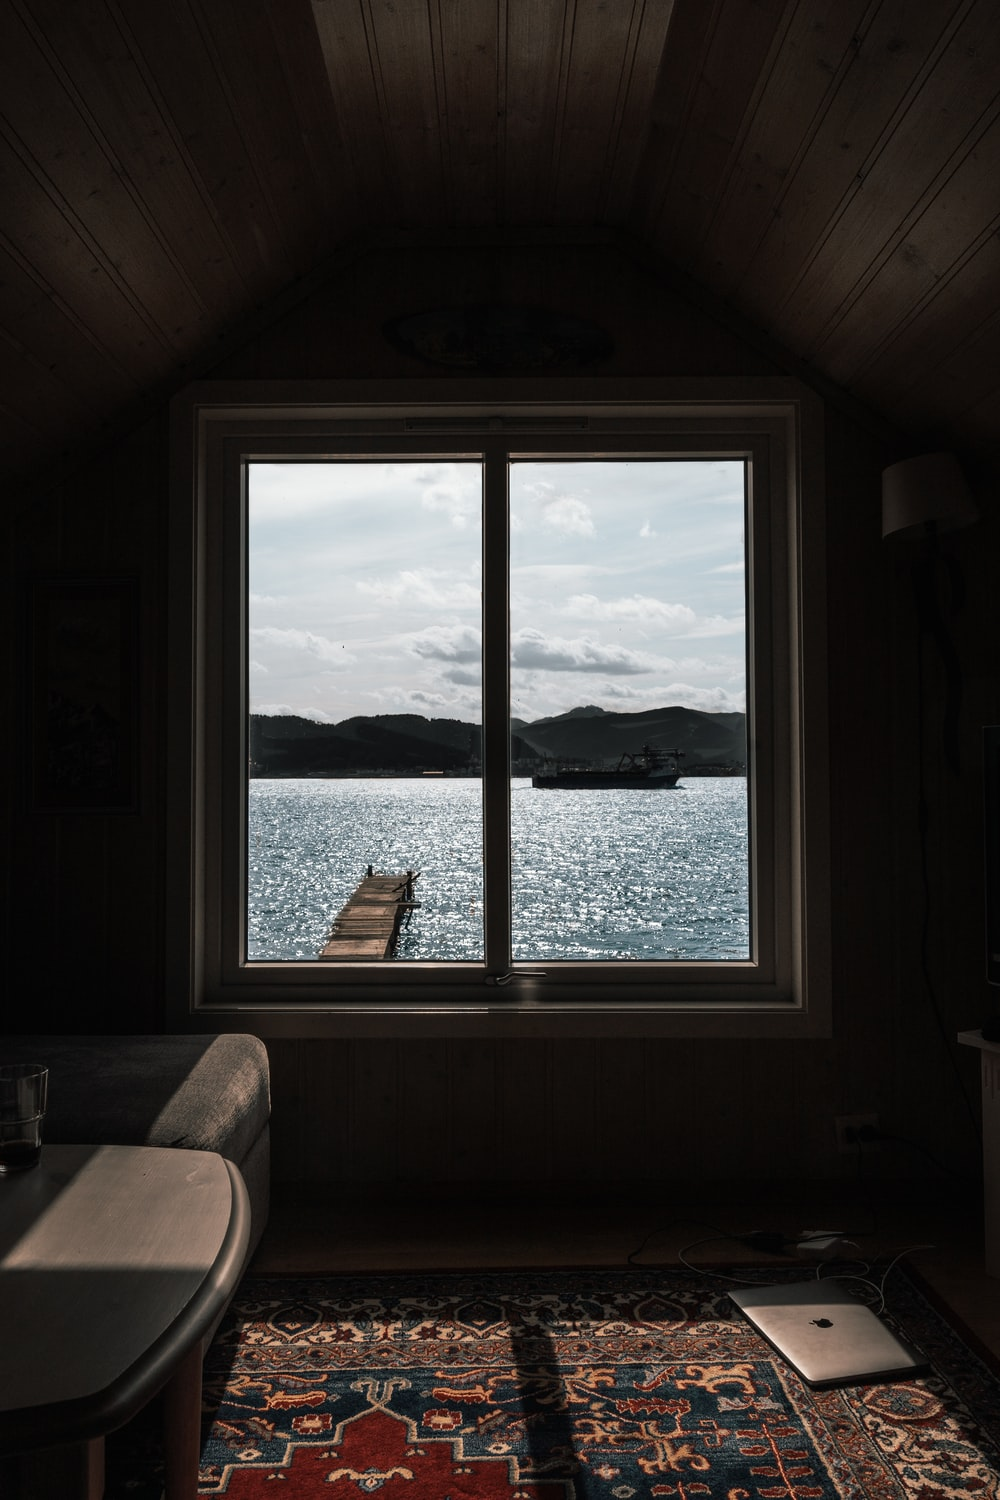 boat in body of water through glass window